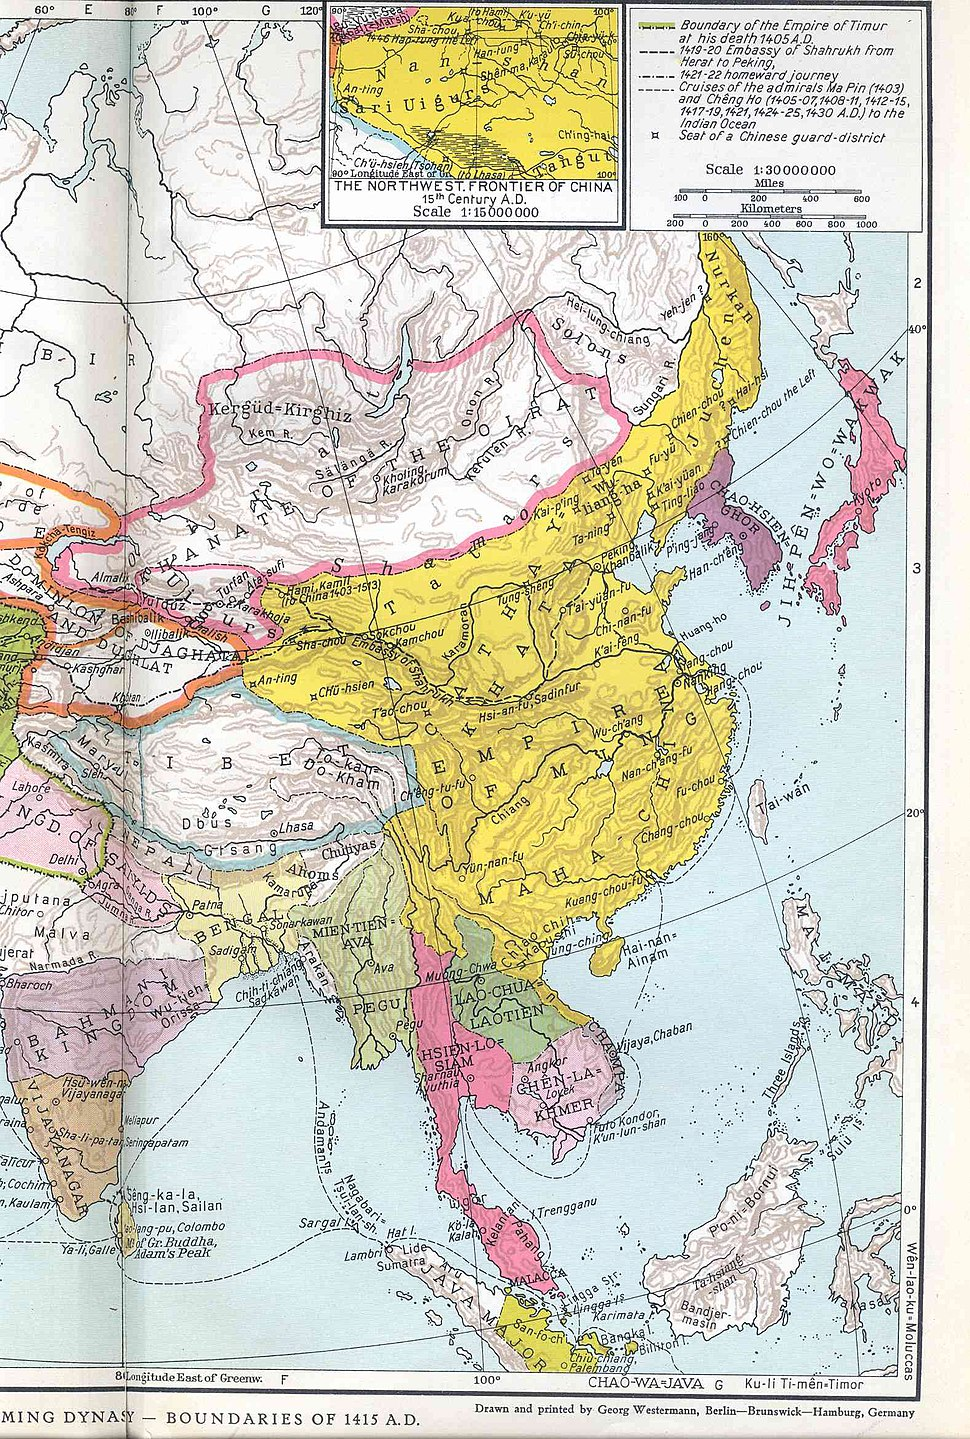 Location of Ming dynasty